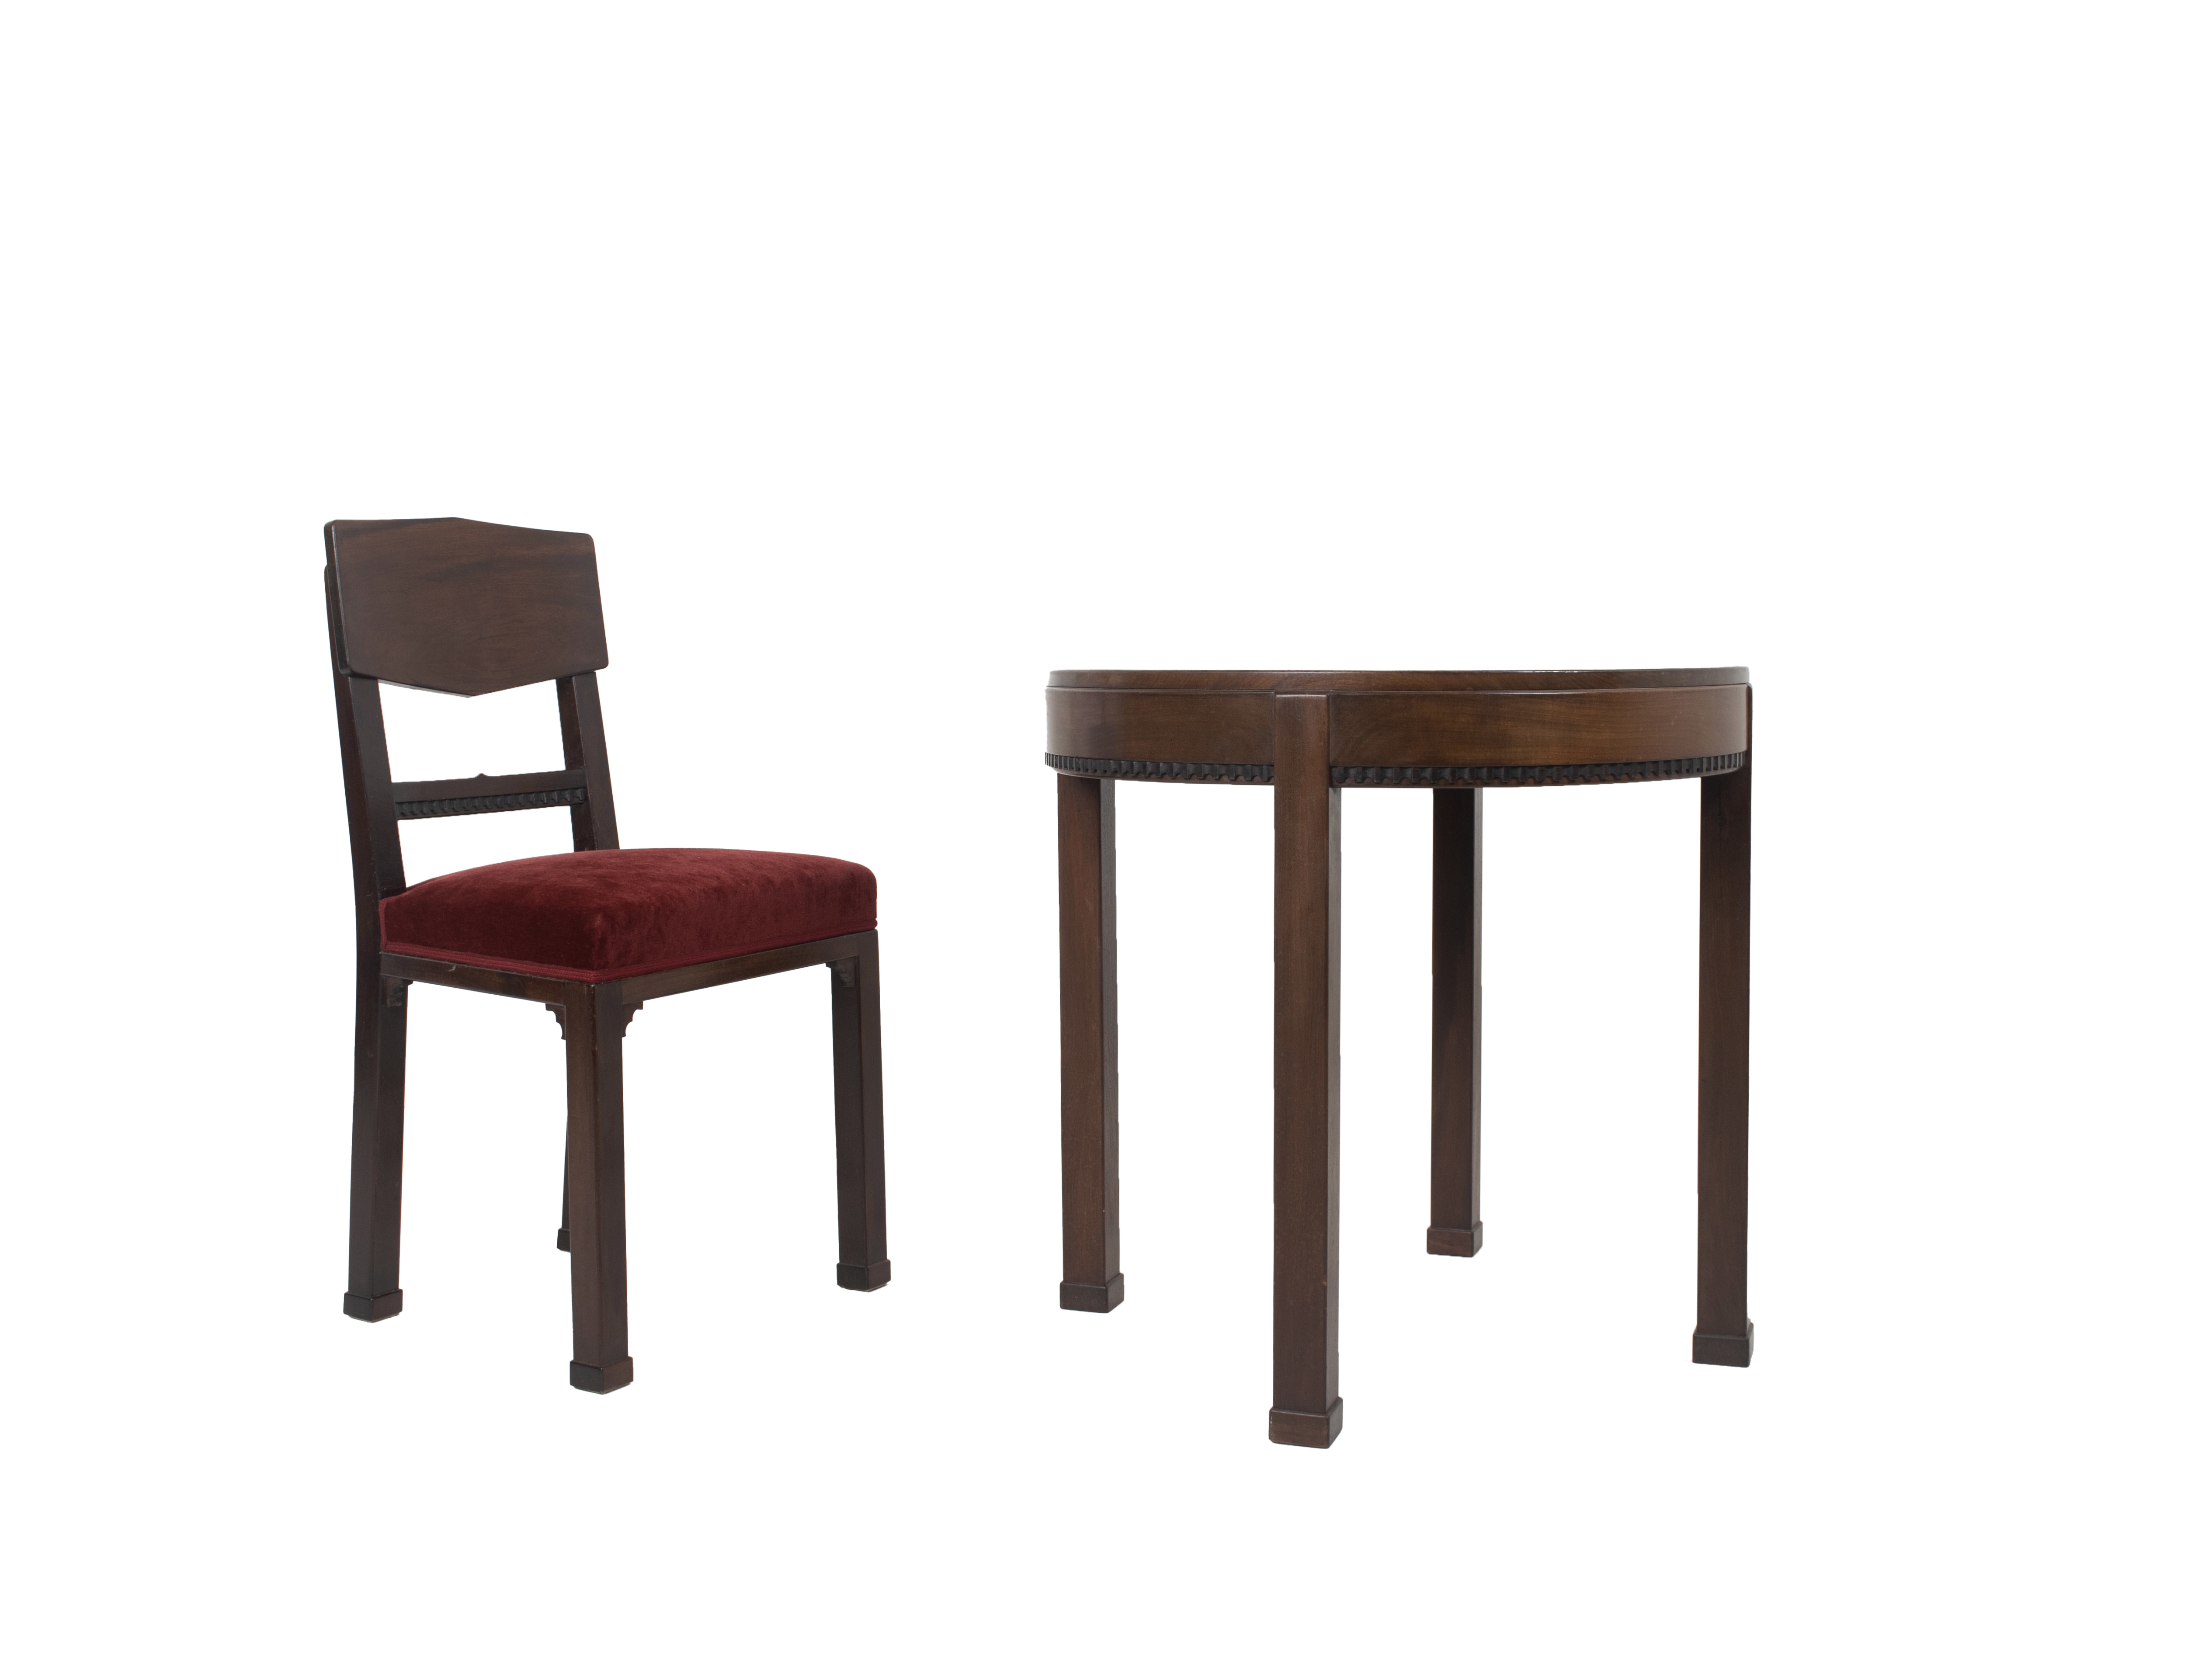 Amsterdam school table and chair